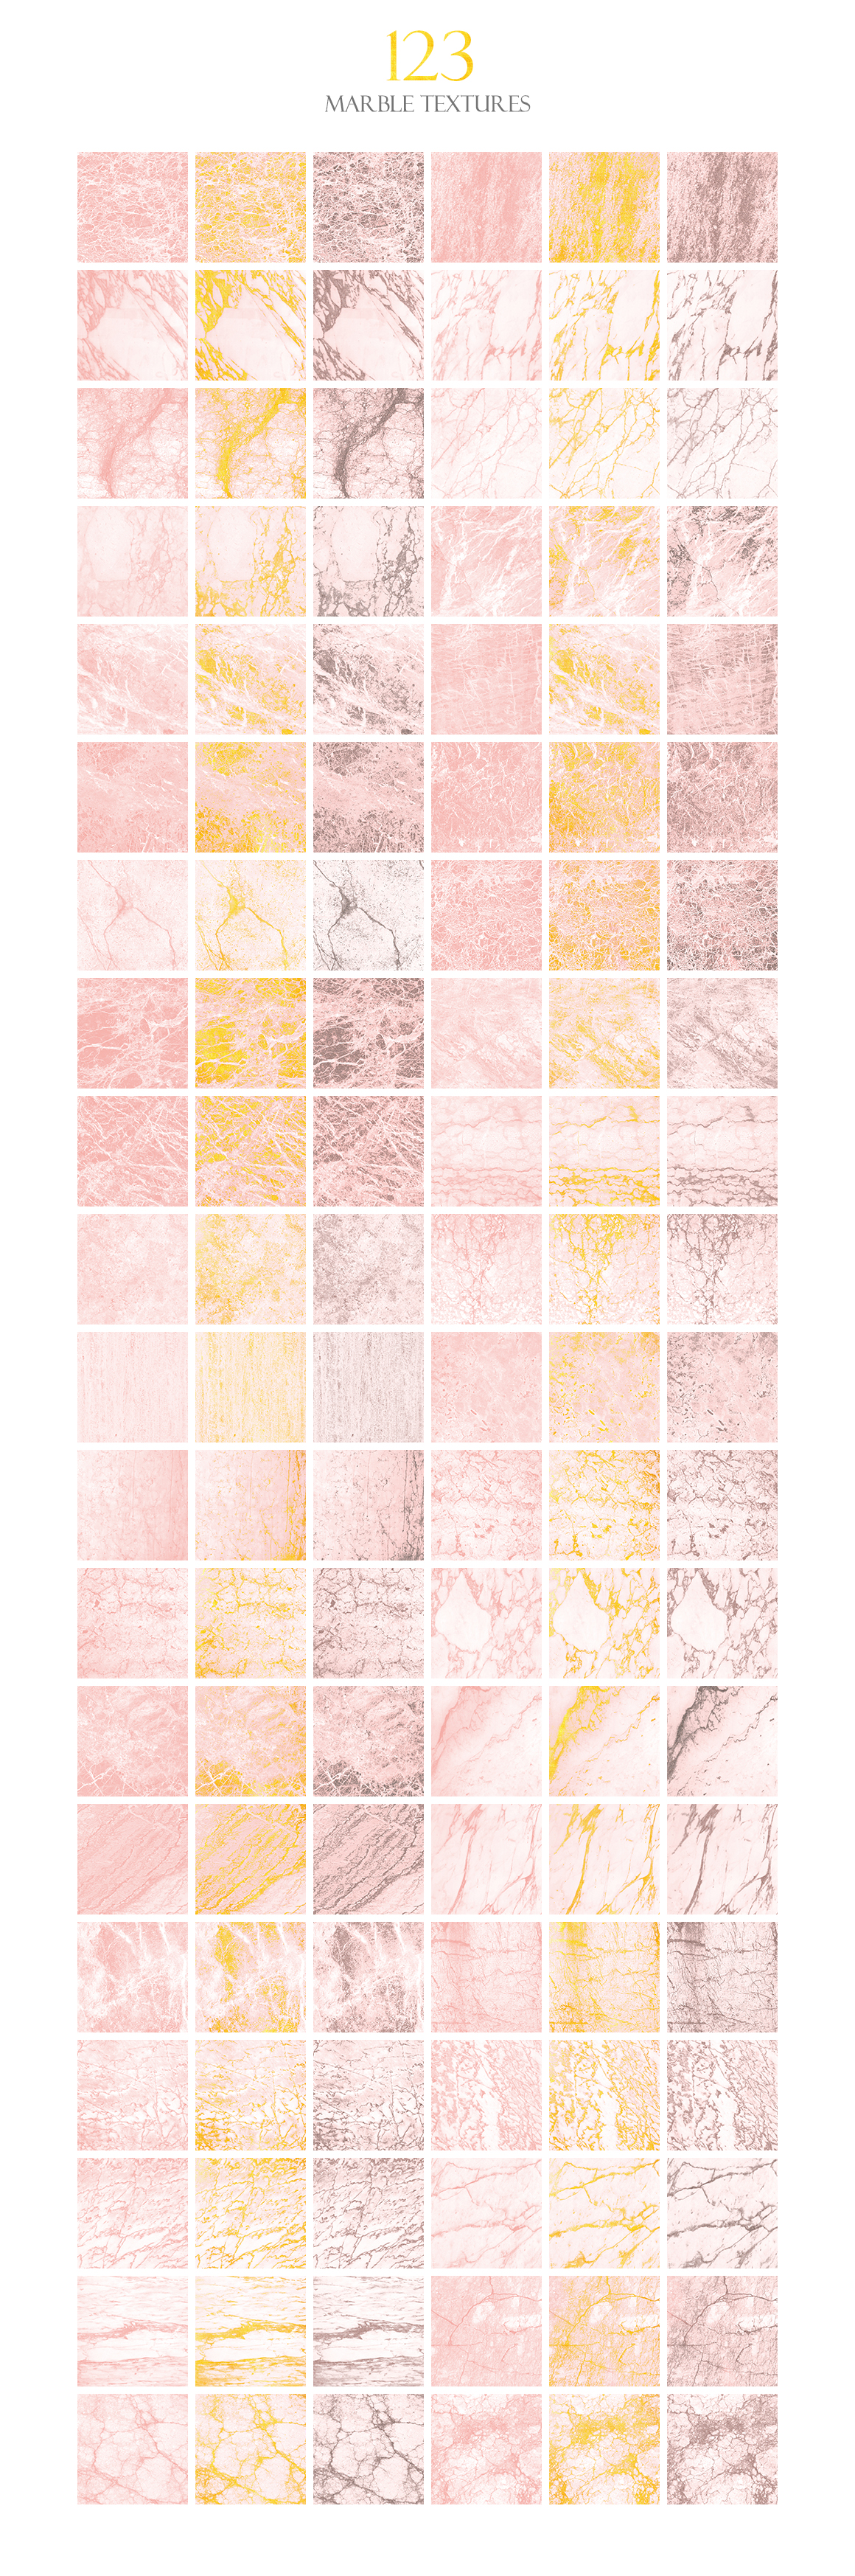 369 Marble Textures example image 7